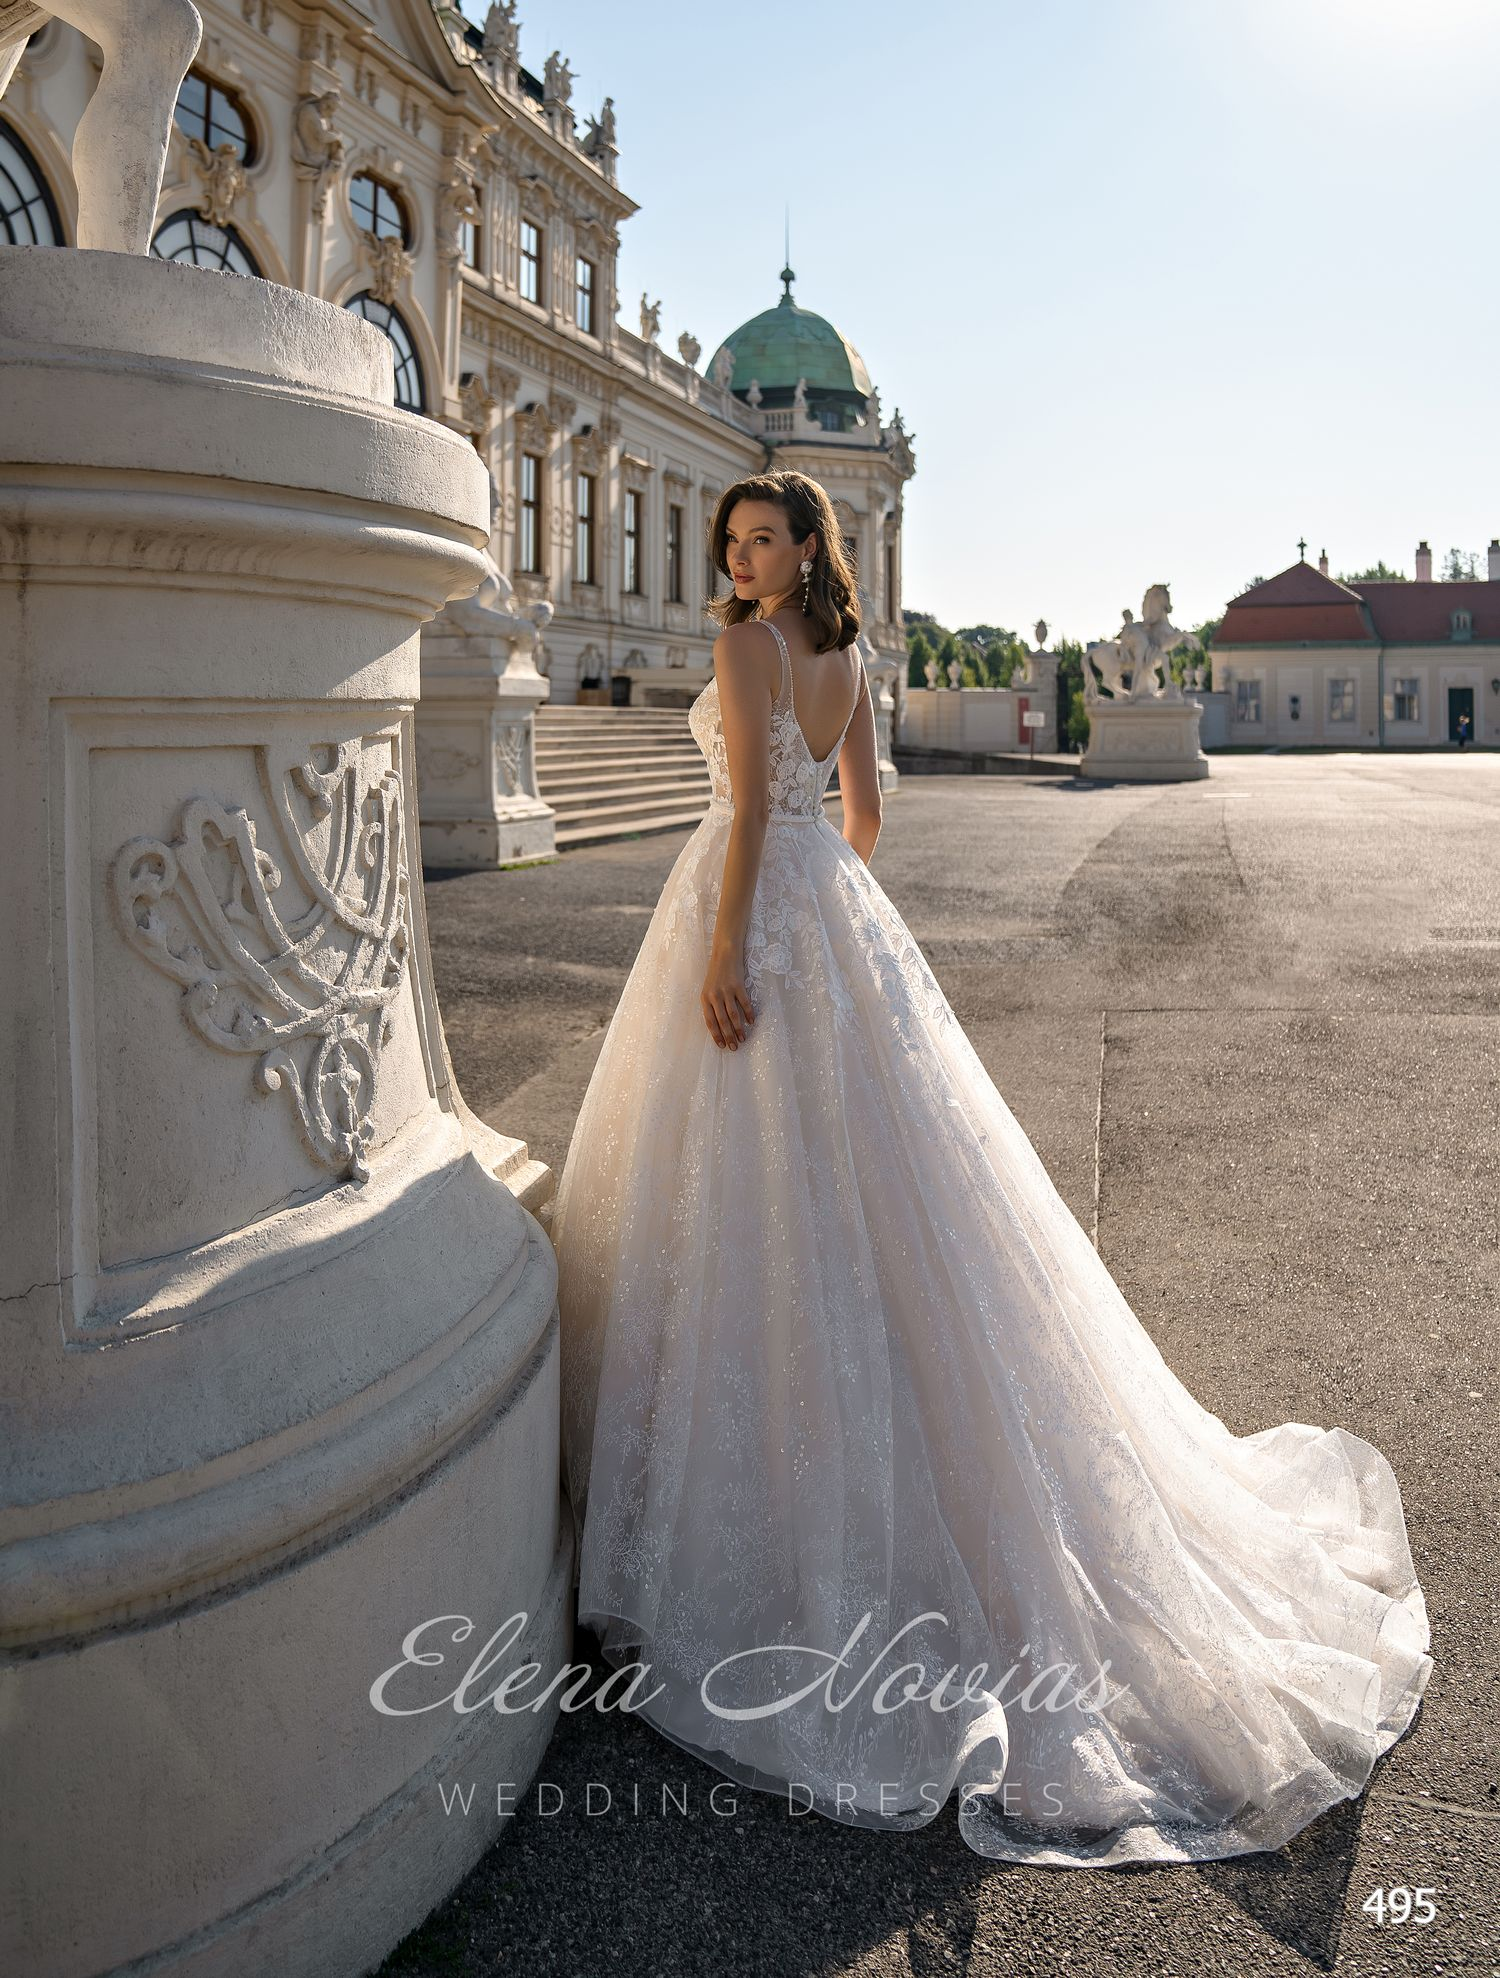 Wedding dresses 495 2